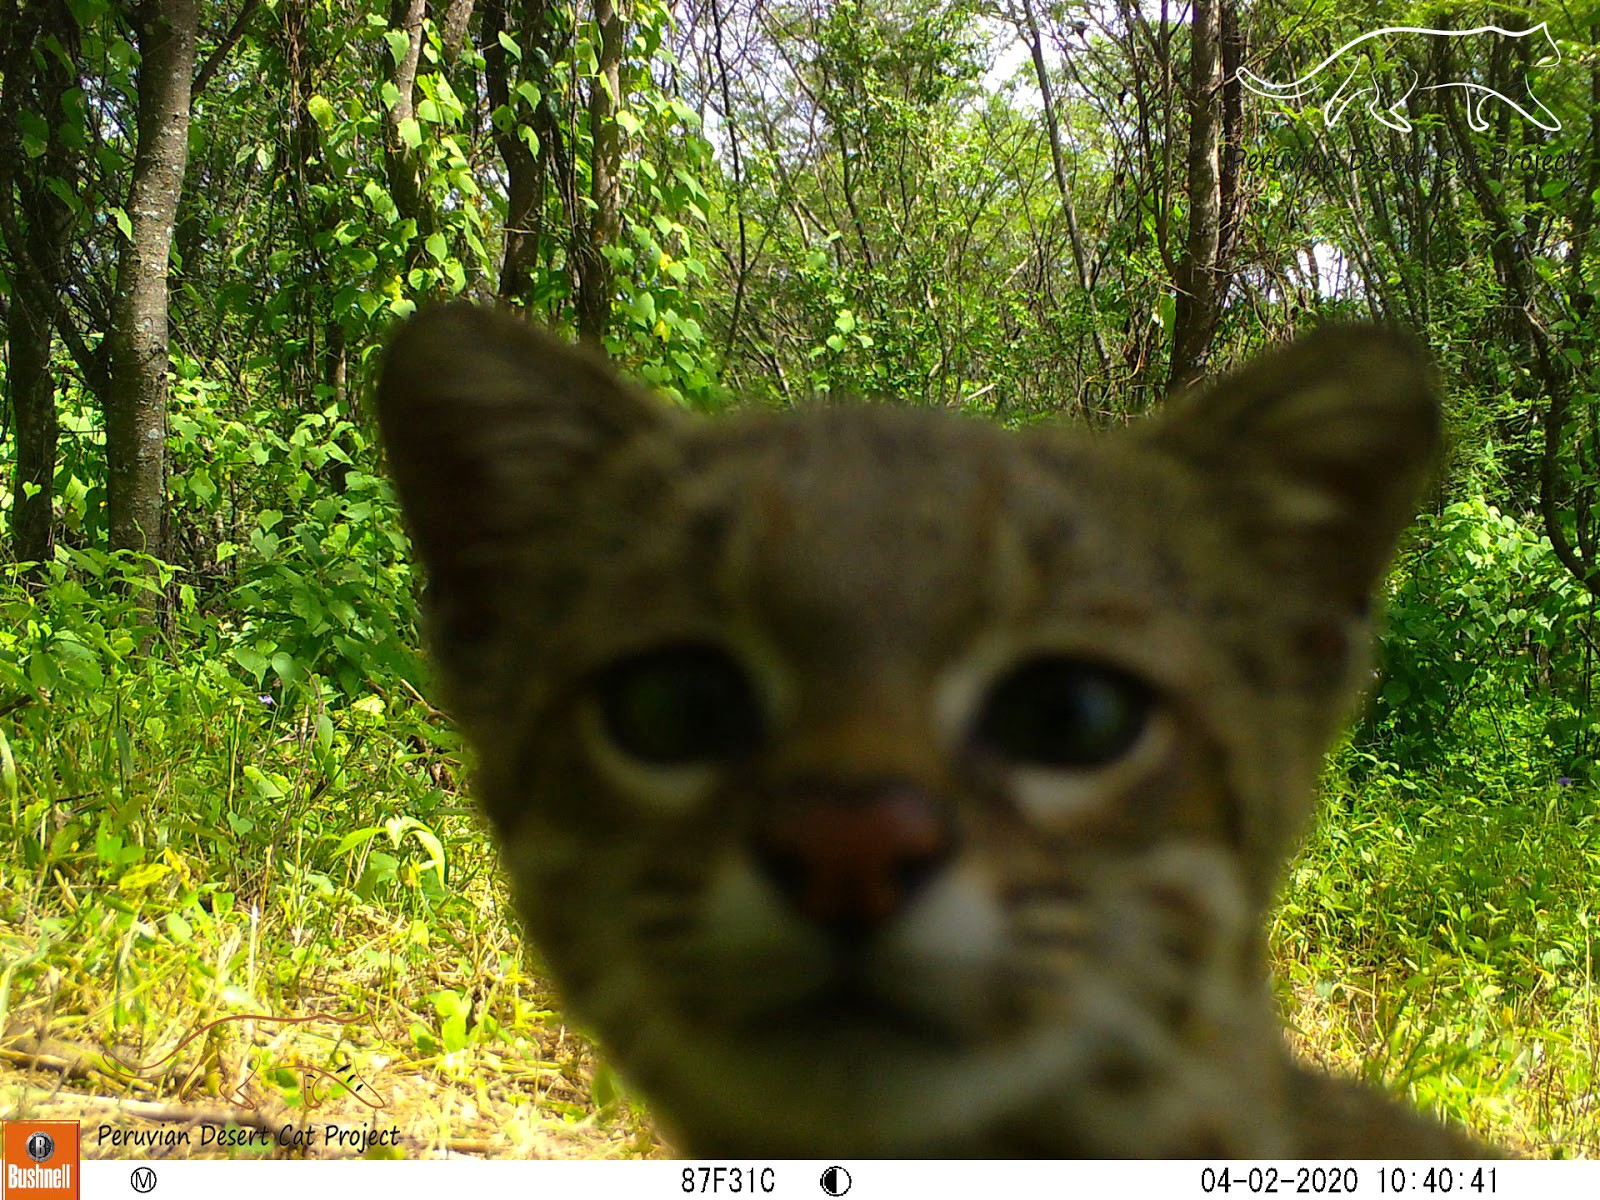 An inquisitive Pampas cat captured giving the motion activated camera trap a sniff.